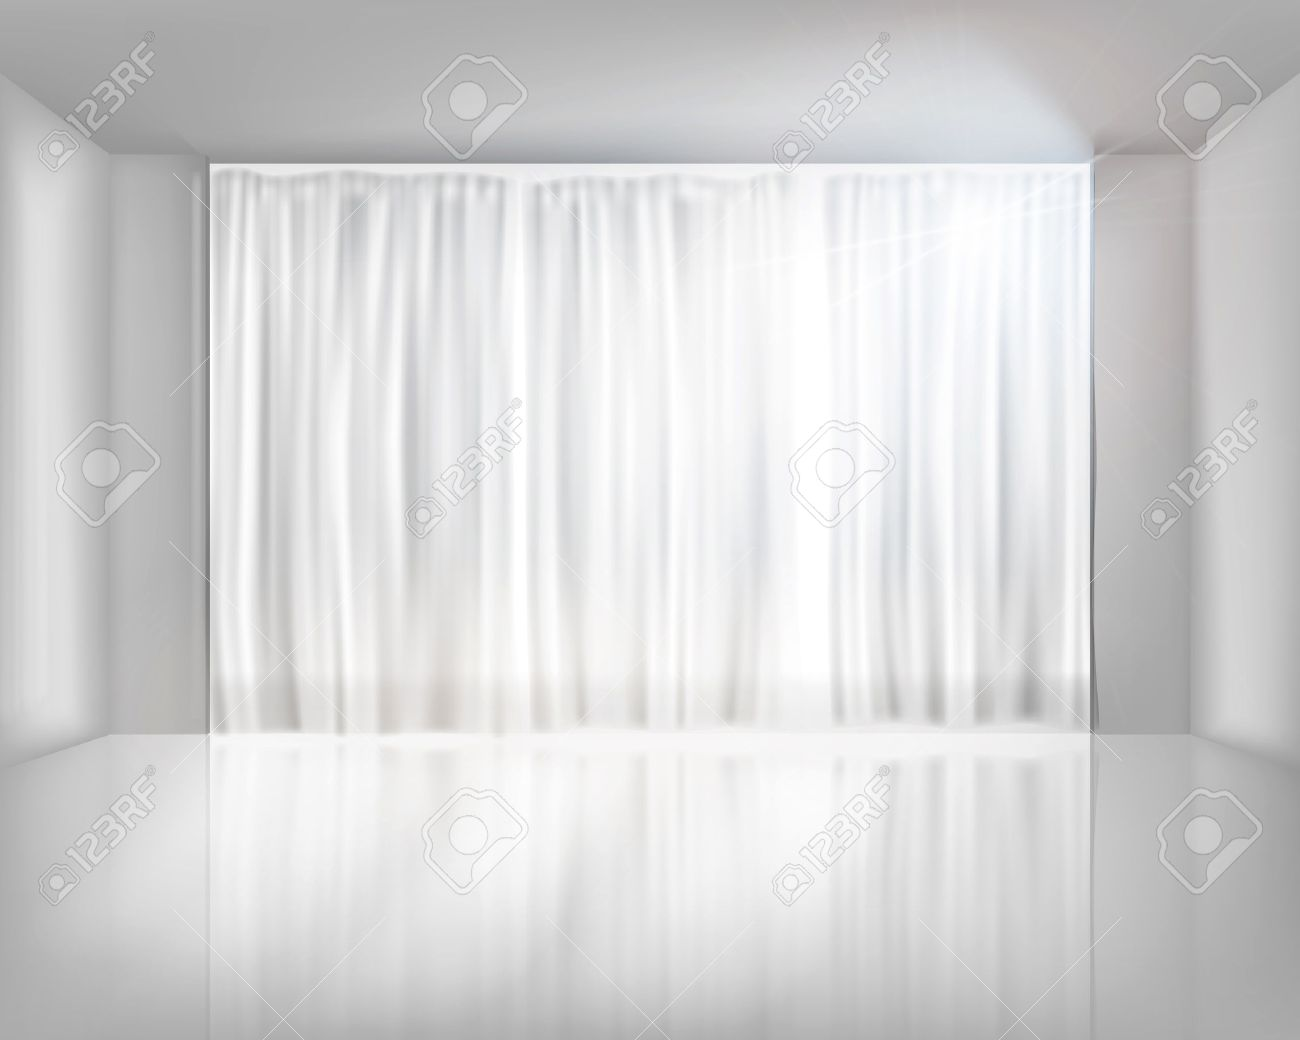 Window With Net Curtains. Vector Illustration. Royalty Free Cliparts ...